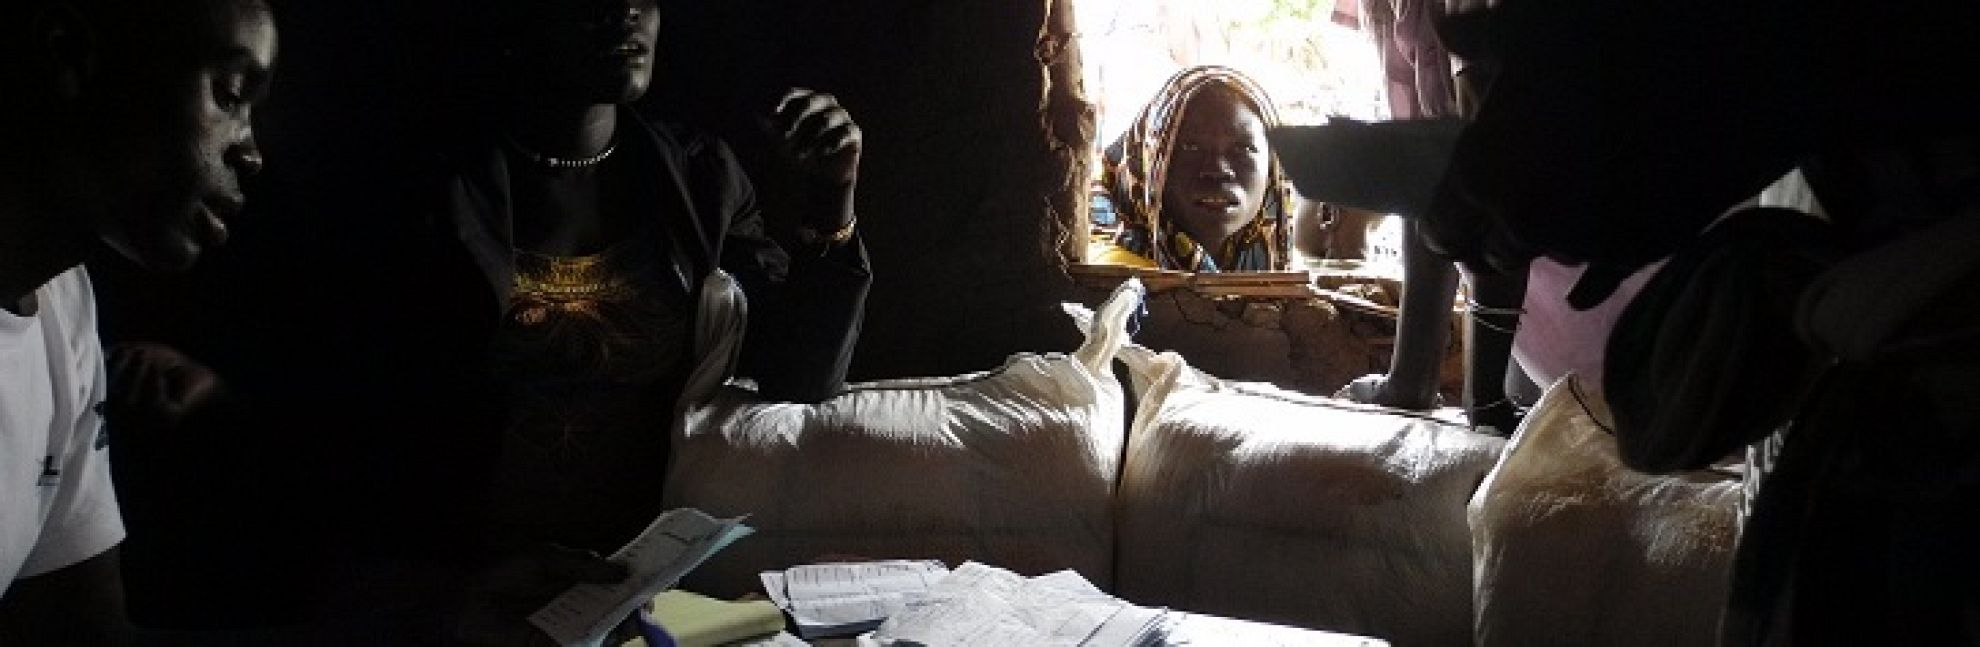 Latest News Malaria consortium receives award for operational excellence in south sudan